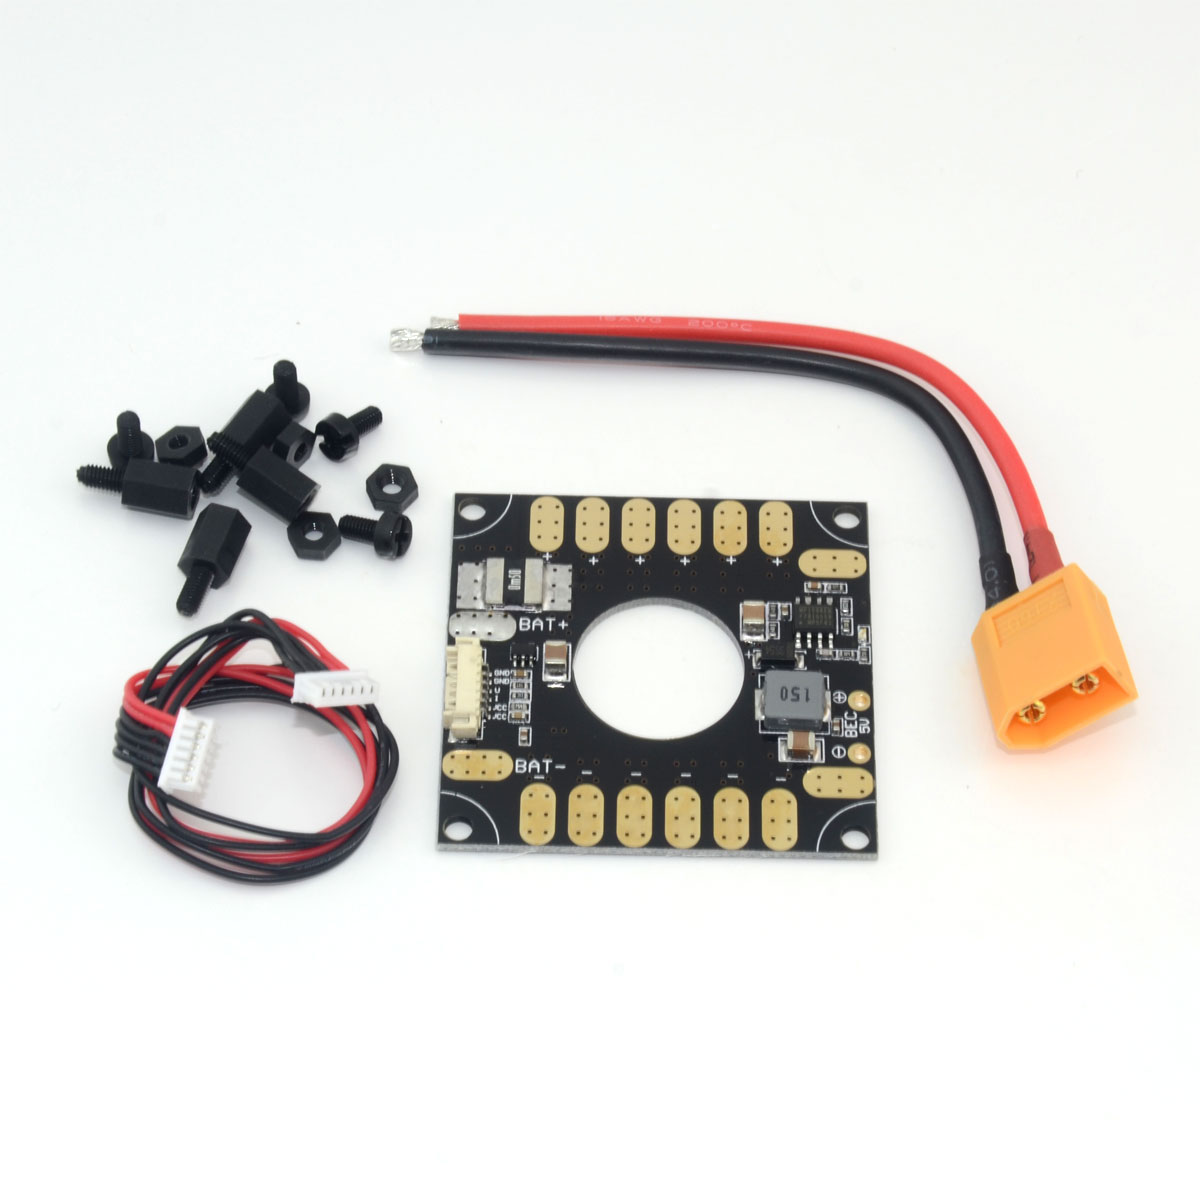 3DR Power Module ESC Distribution Board 5V BEC 3in1 for APM and Pixhawk PX4 RC apm pixhawk px4 5 in 1 pdb super shock absorber integrated power module esc power distribution board 5v